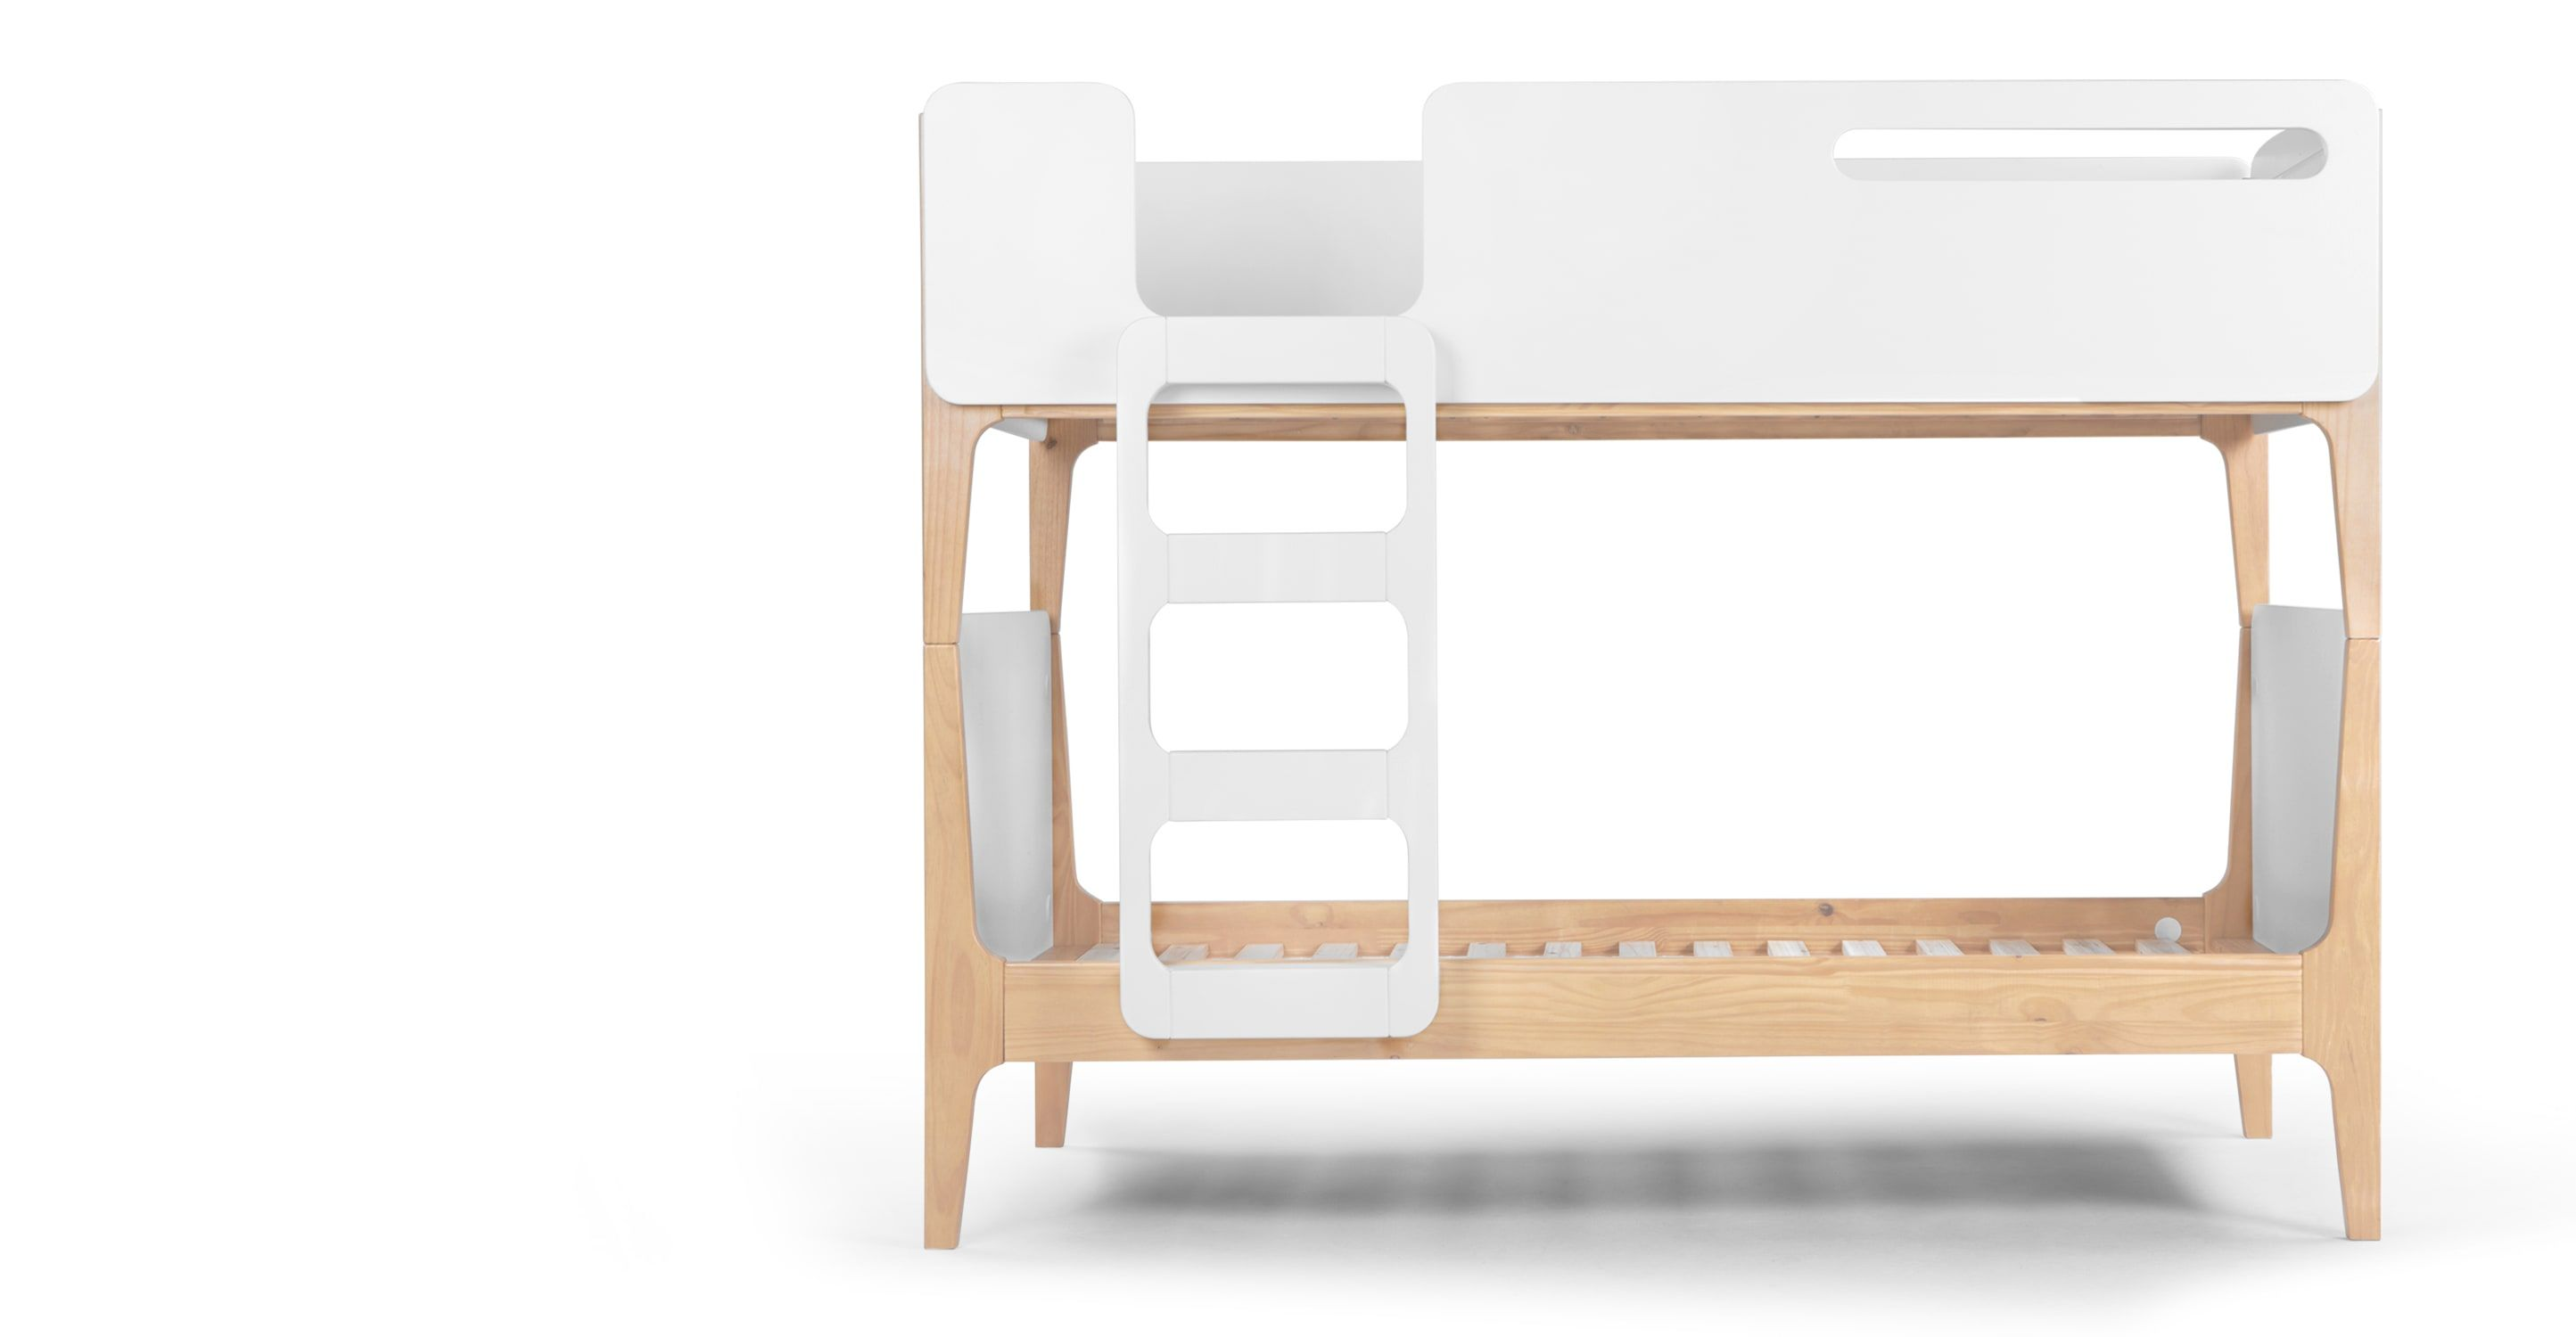 Twin loft bed dimensions  Linus stapelbed grenen en wit  Bunk bed Pine and Loft interiors